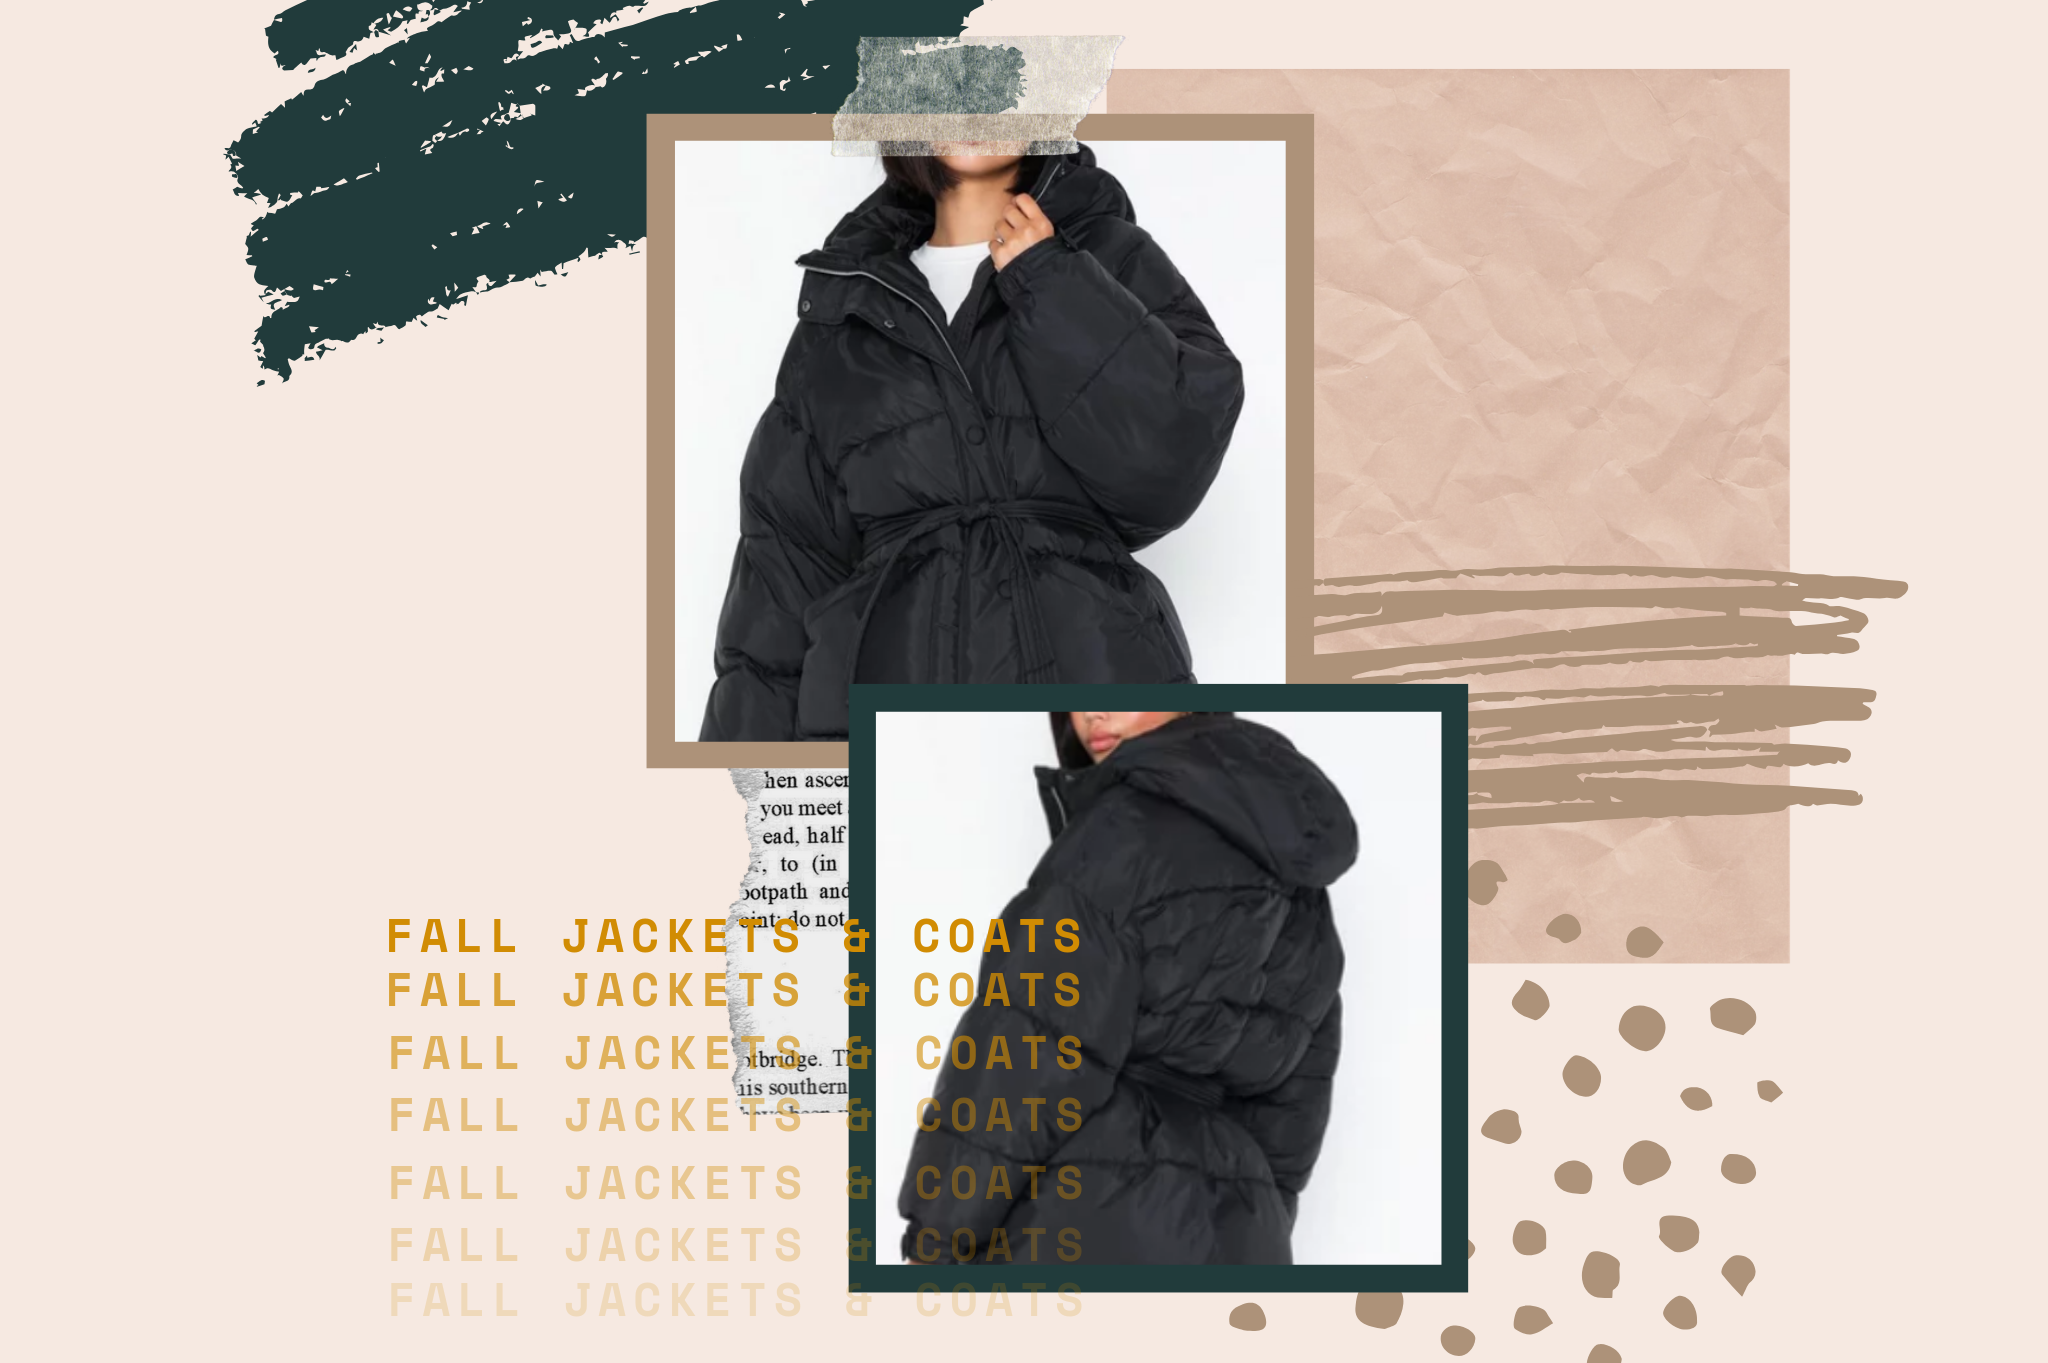 fall jackets ootd fall outfit inspo coats fall season look of the day what to wear